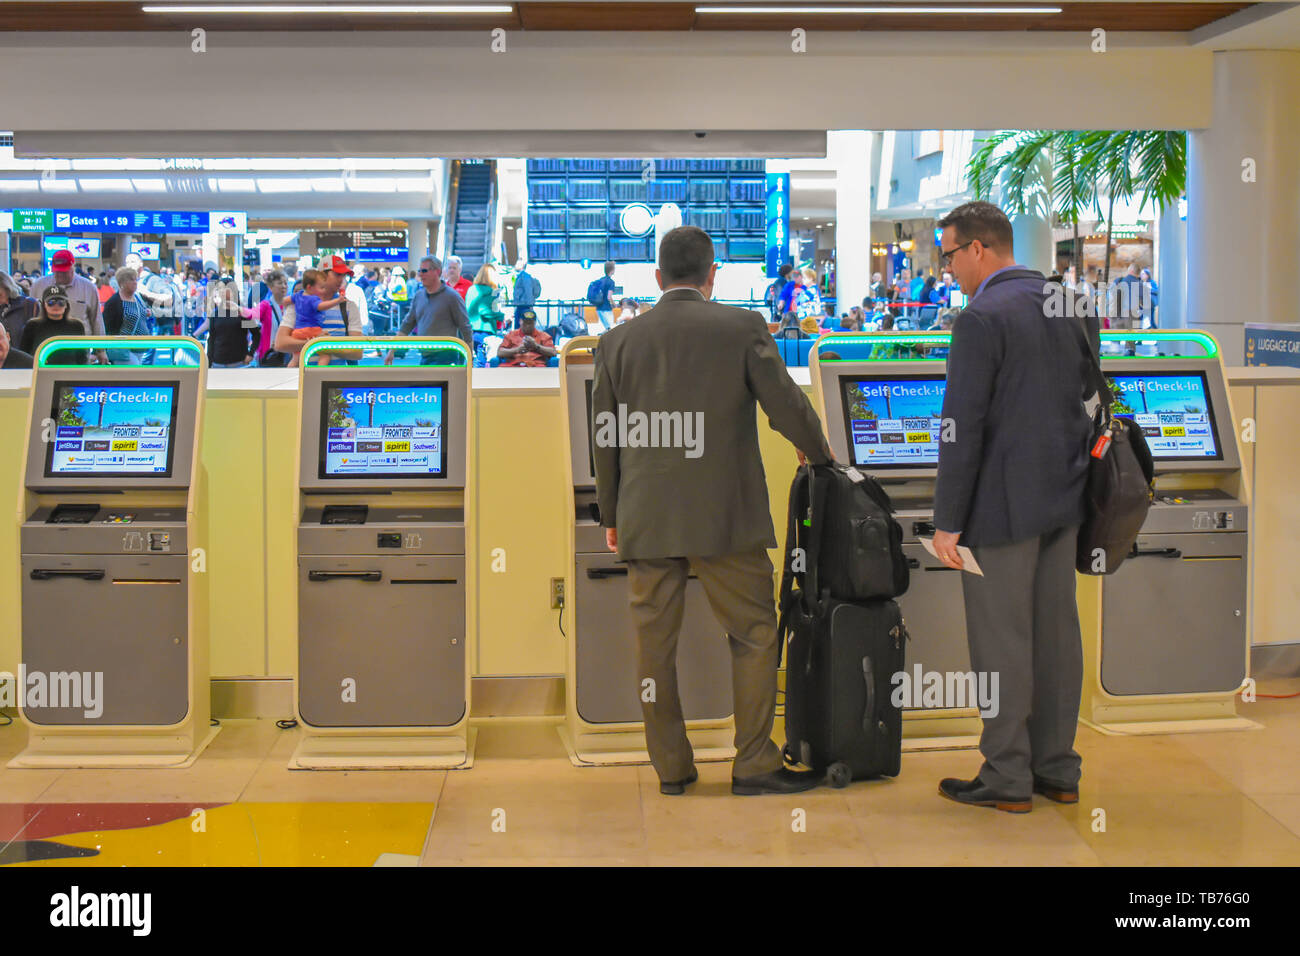 Orlando, Florida.  March 01, 2019. Businessman using Self service check-in at Orlando International Airport (1) - Stock Image